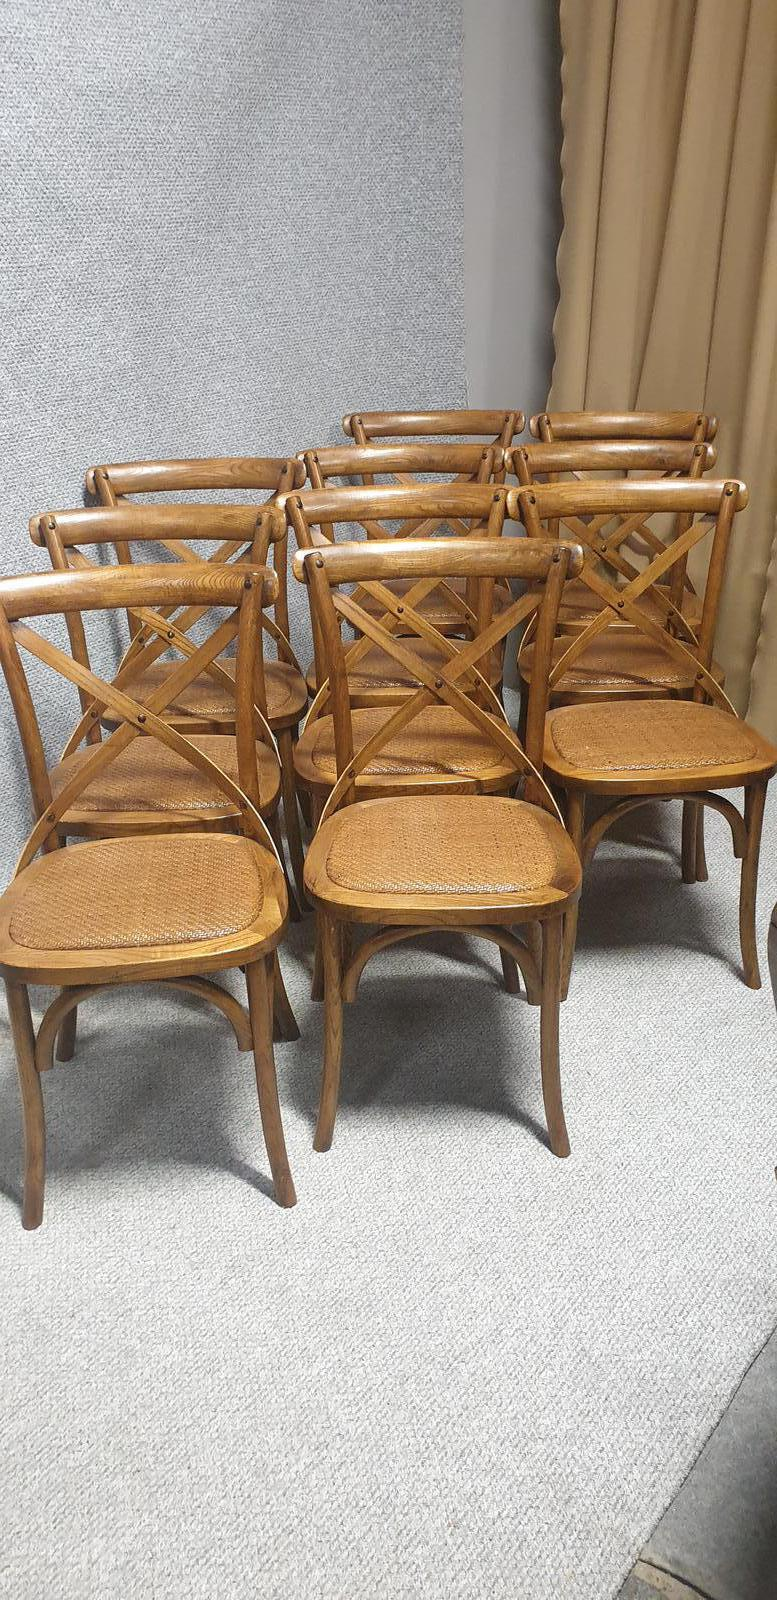 Set of 10 Bentwood Kitchen Chairs (1 of 1)